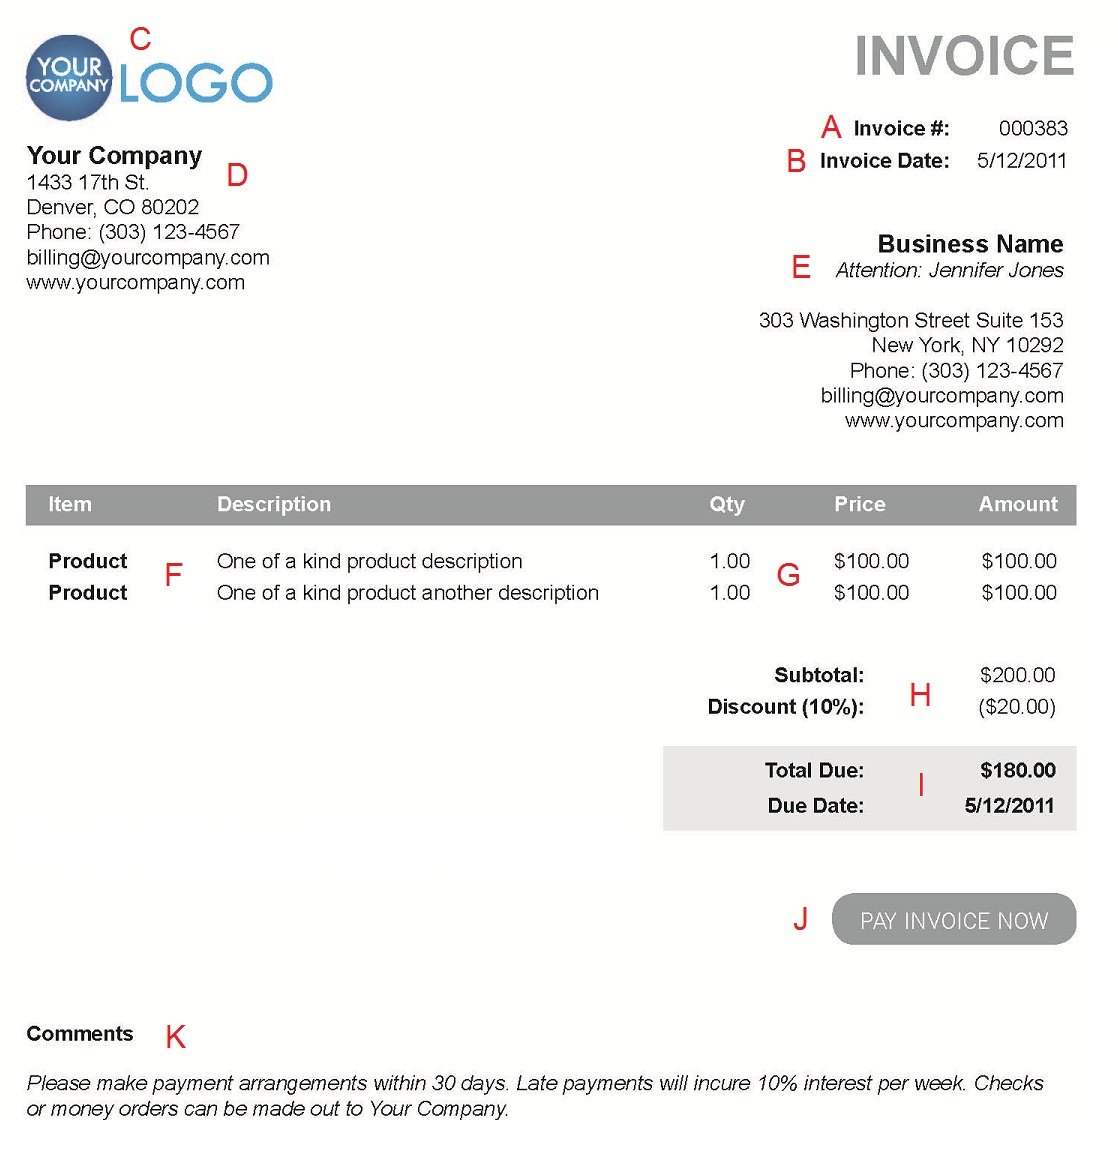 Shopdesignsus  Scenic The  Different Sections Of An Electronic Payment Invoice With Gorgeous A  With Archaic Recurring Invoicing Also Free Invoice Word Template In Addition Please Find Enclosed Invoice And Online Invoice Generator Uk As Well As Consultant Invoice Sample Additionally Invoice Factoring Fees From Paysimplecom With Shopdesignsus  Gorgeous The  Different Sections Of An Electronic Payment Invoice With Archaic A  And Scenic Recurring Invoicing Also Free Invoice Word Template In Addition Please Find Enclosed Invoice From Paysimplecom